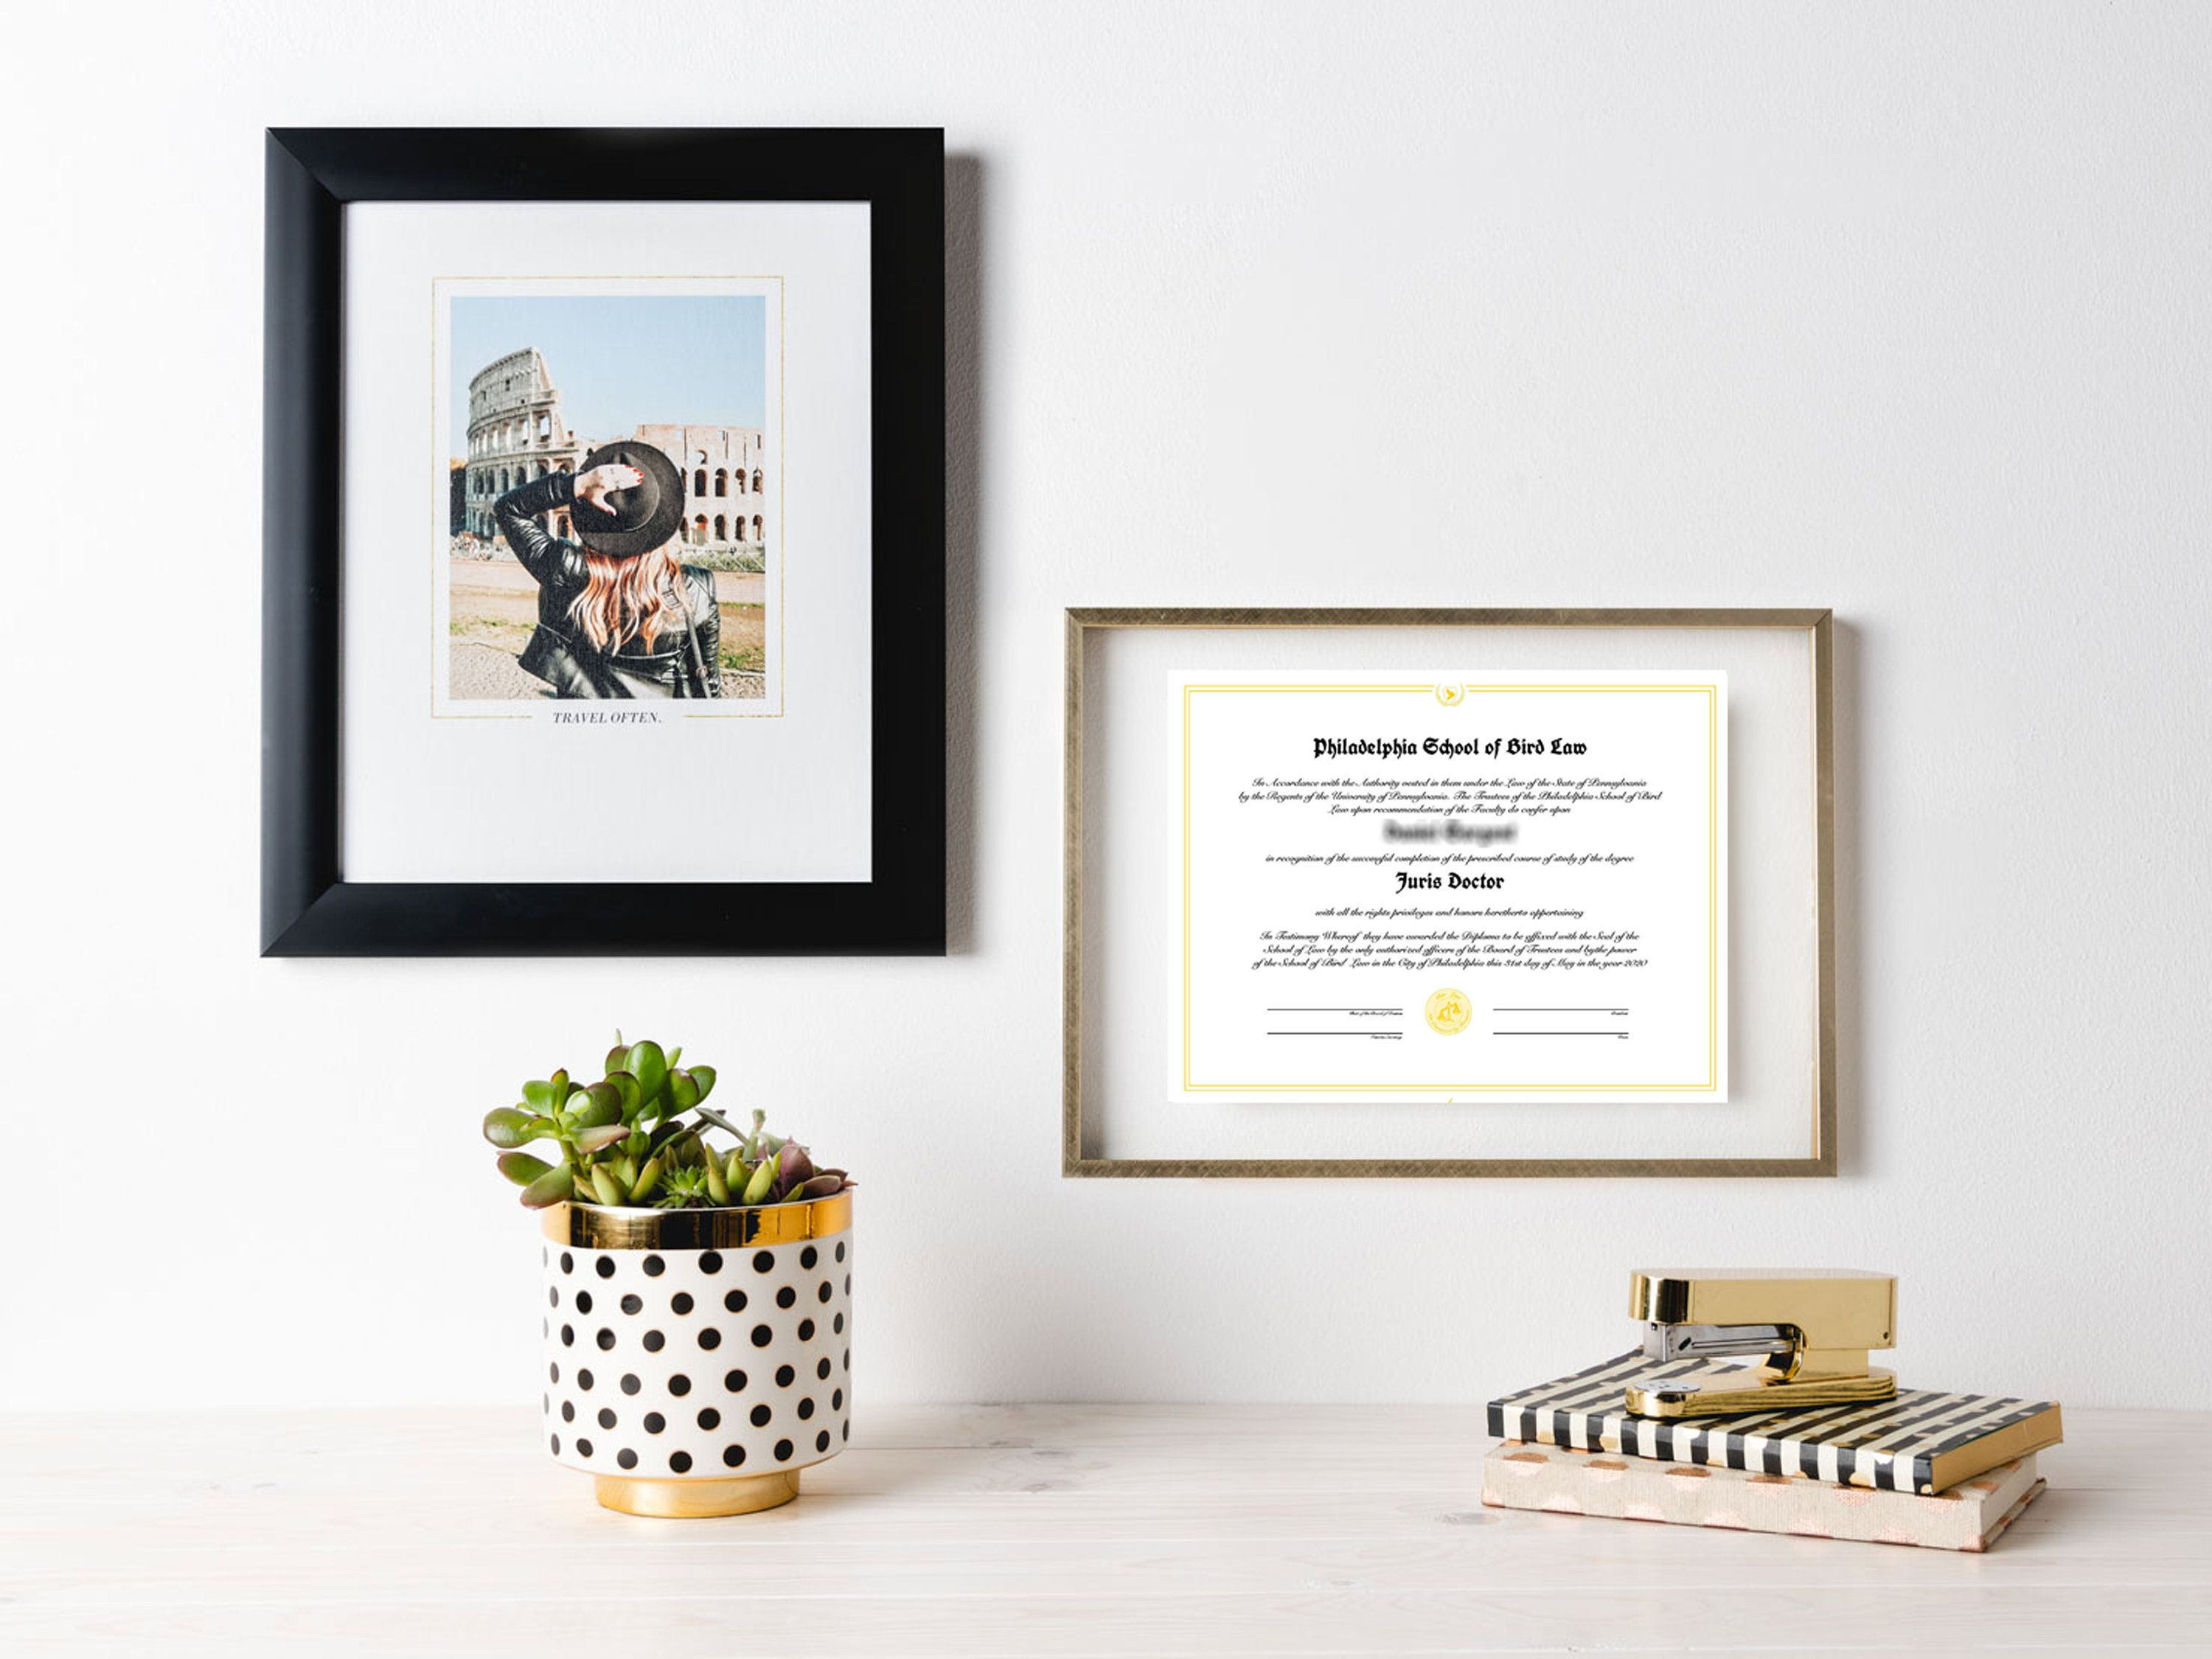 Sunny In Philadelphia Print School Of Bird Law Wall Art Etsy Diploma Display Diploma Display Wall Diploma Wall